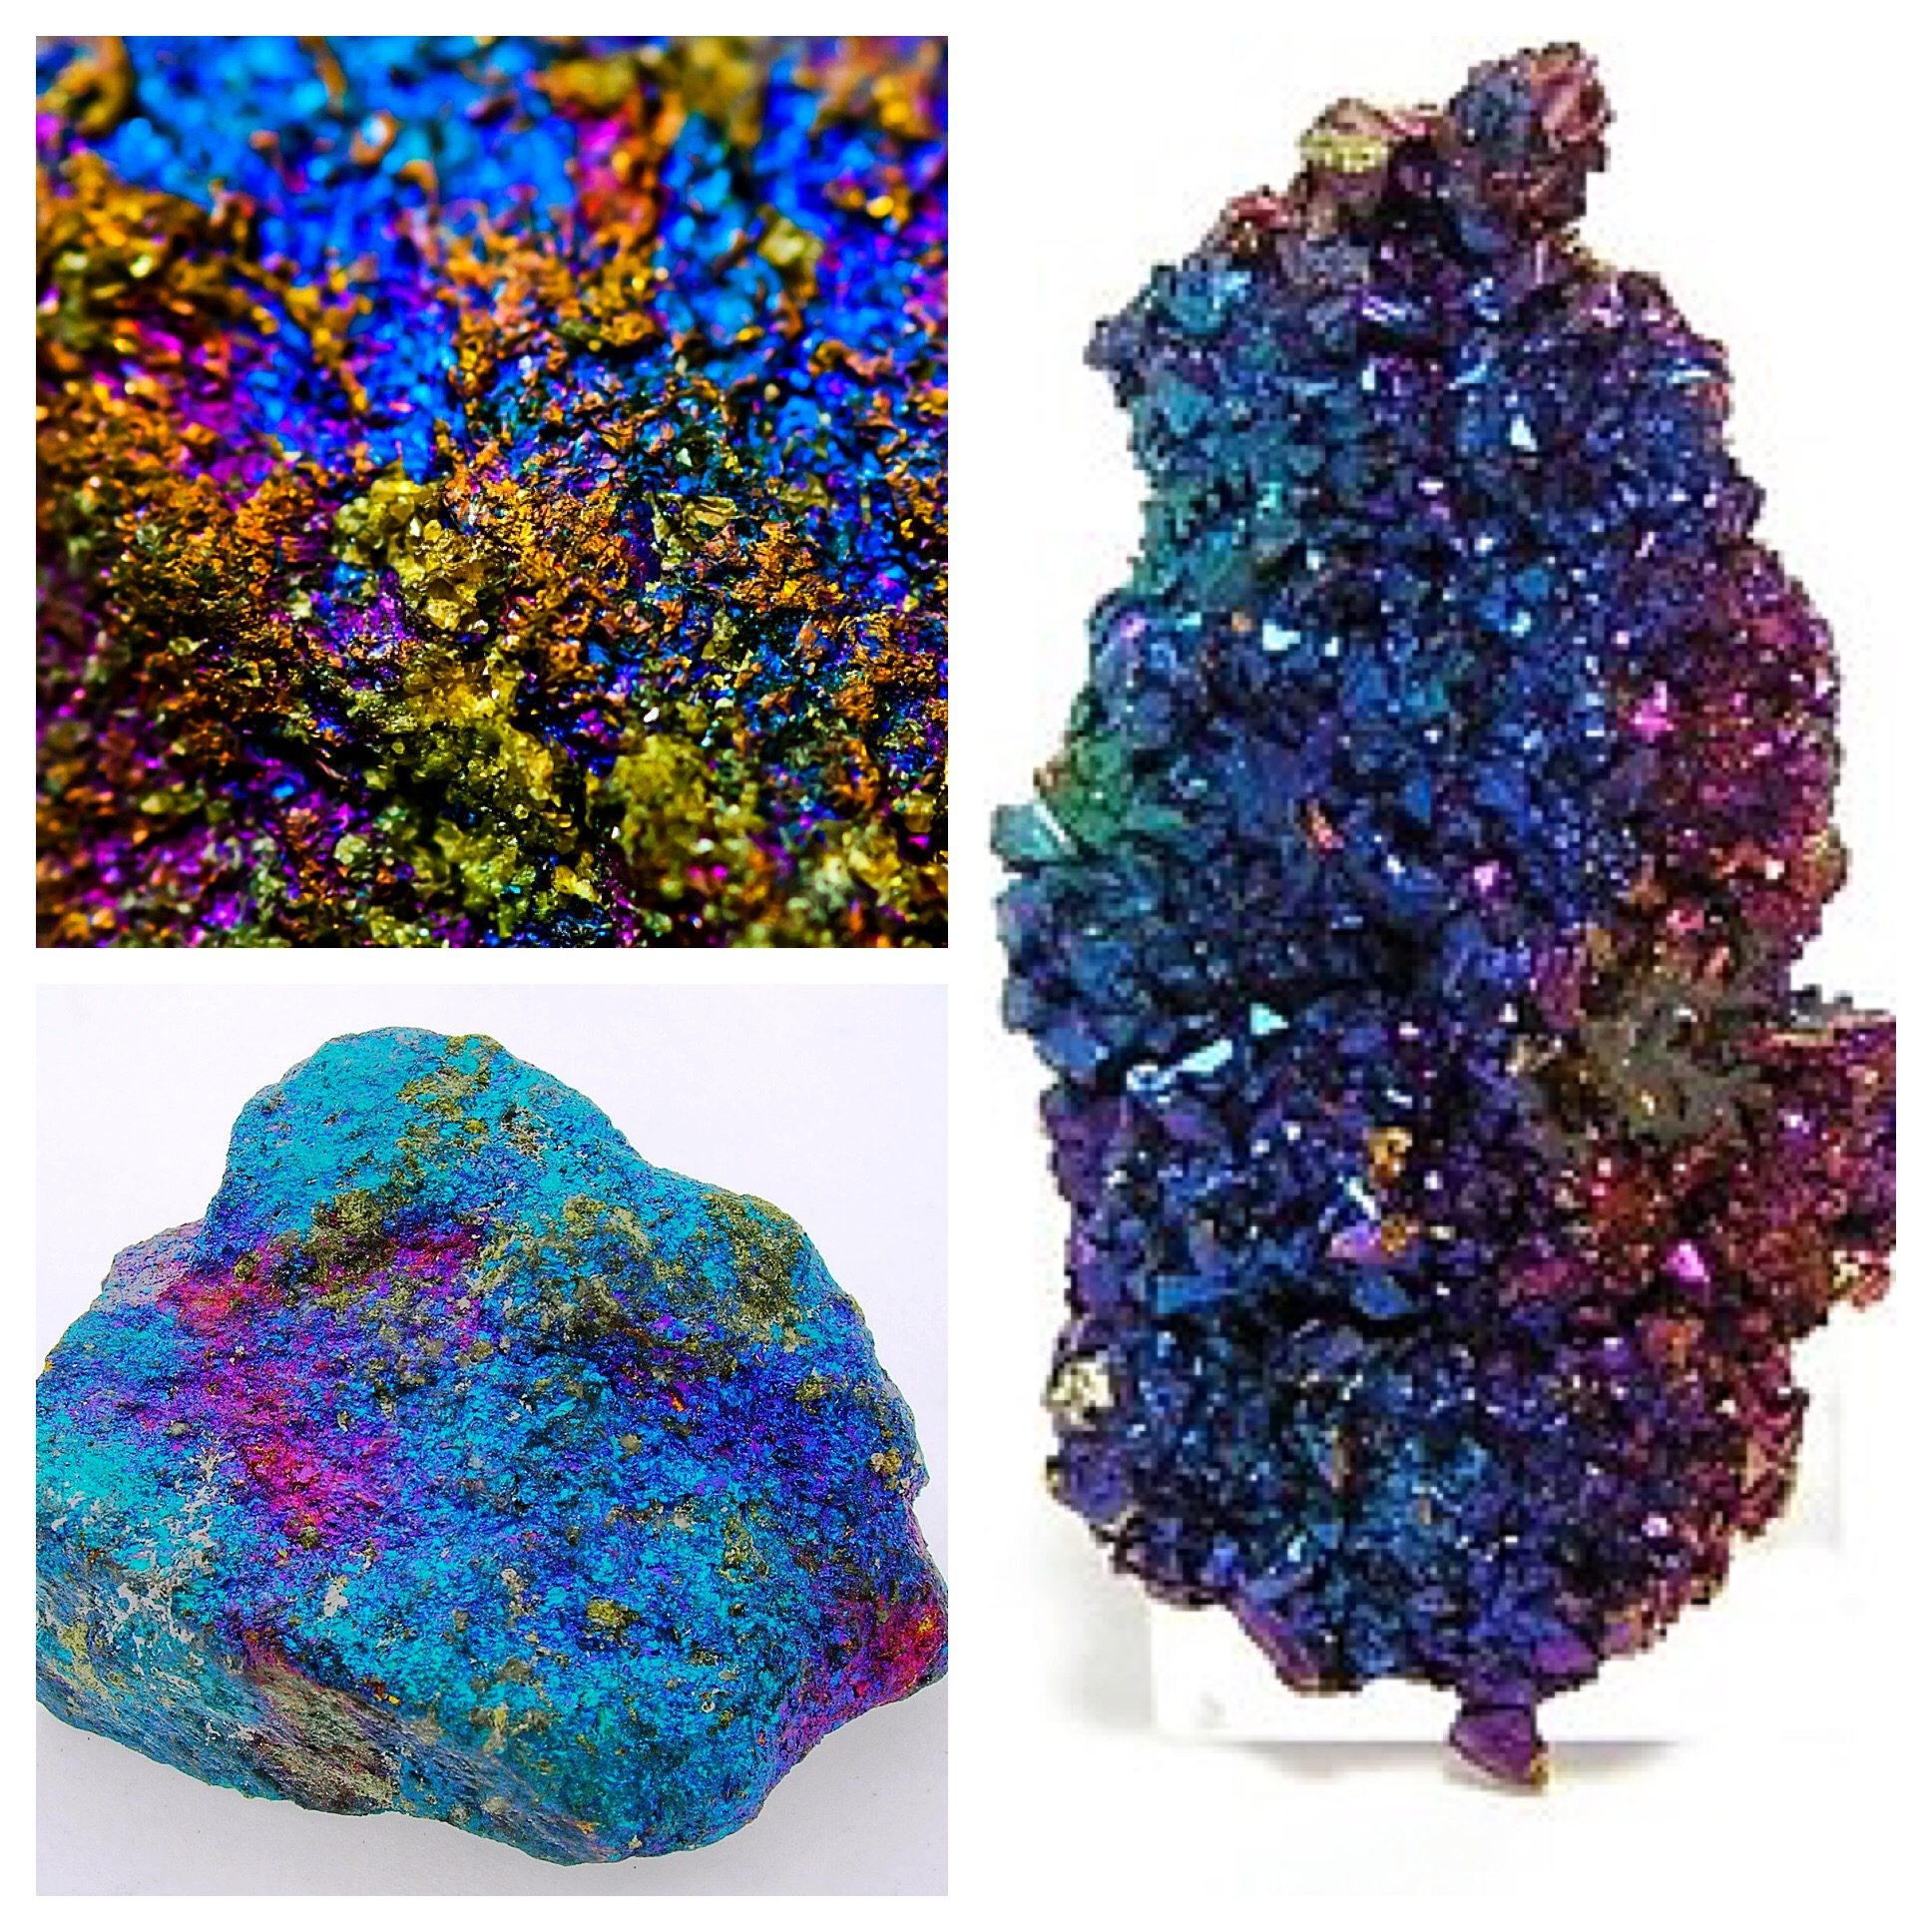 Crystal of the Week Peacock Ore